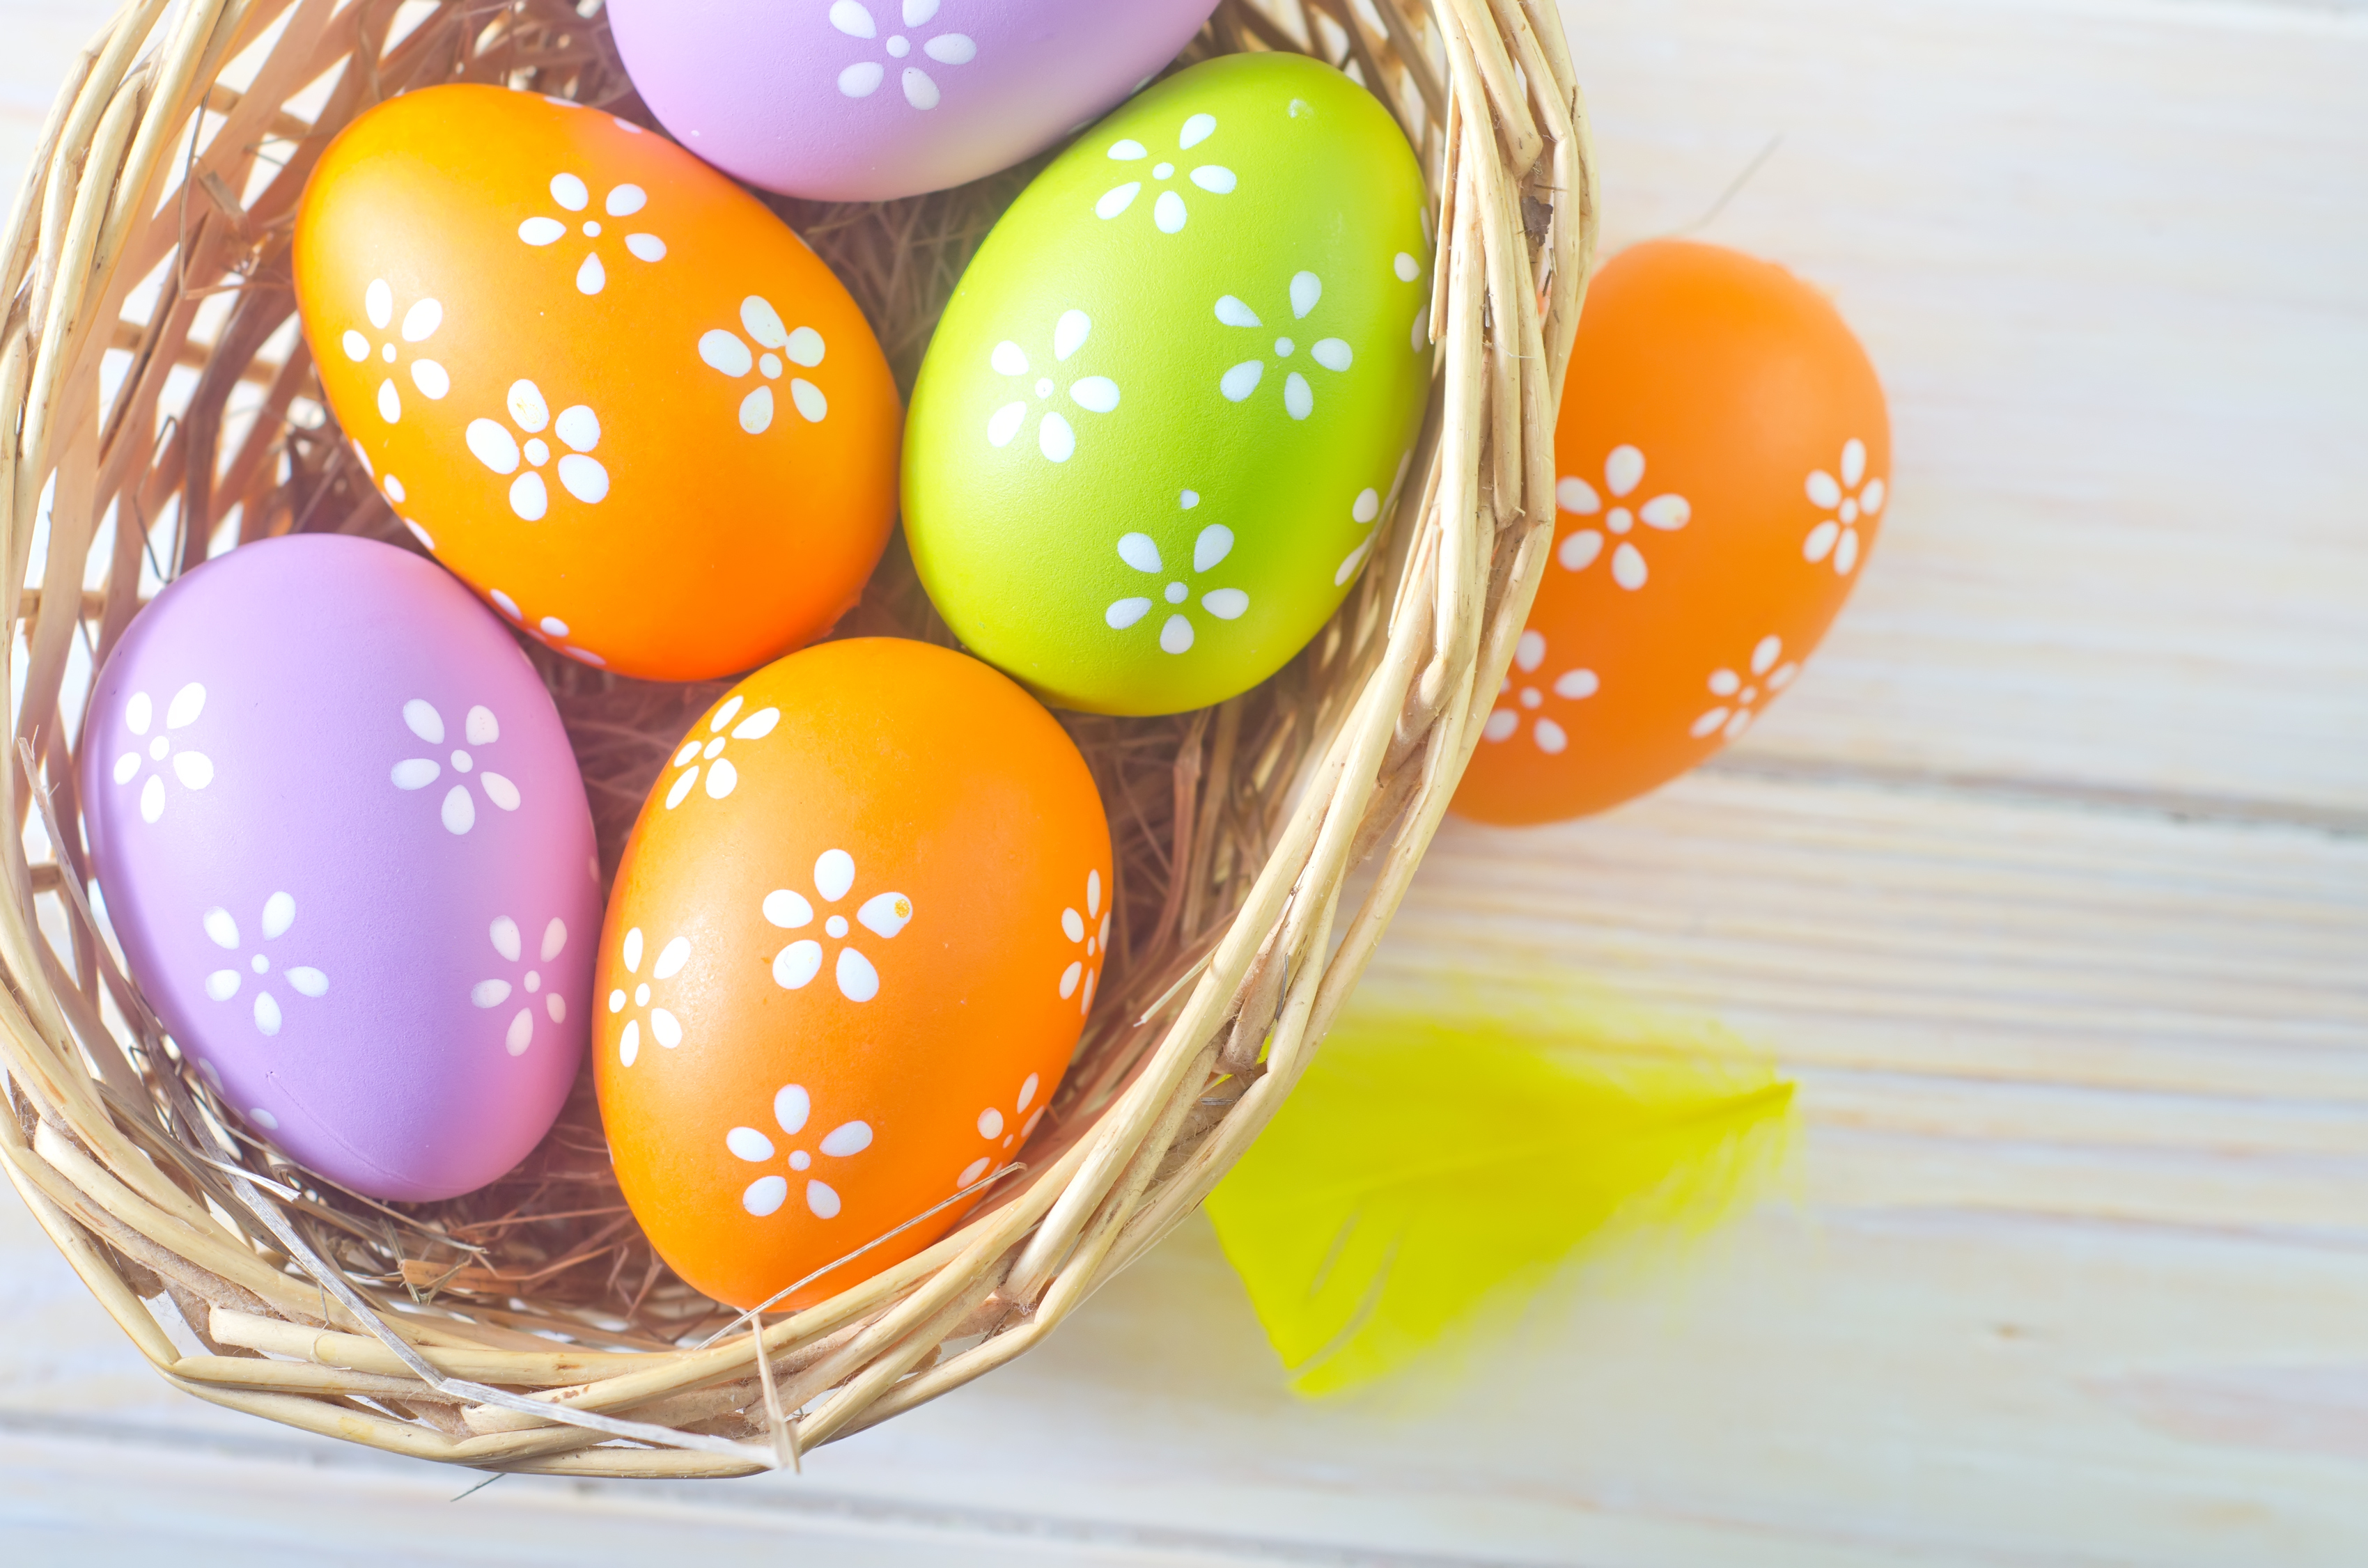 This Photo Is Of A Basket Colorfully Decorated Easter Eggs